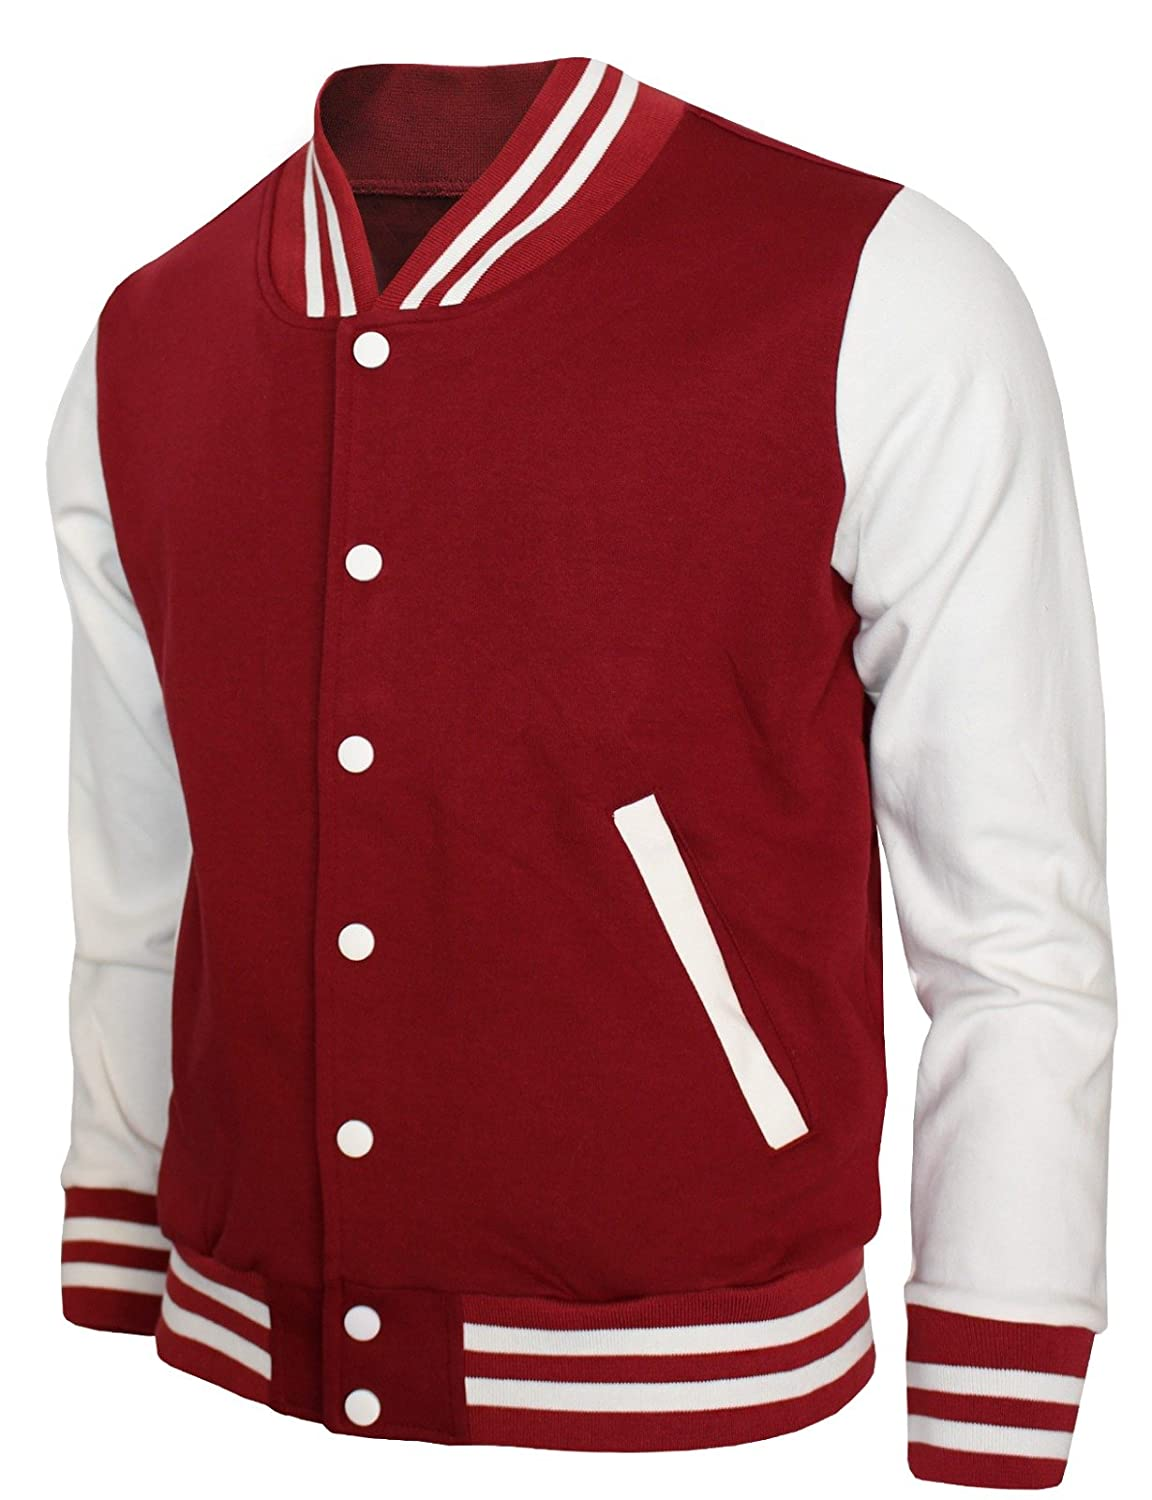 Men's Vintage Style Coats and Jackets BCPOLO Baseball Jacket Varsity Baseball Cotton Jacket Letterman jacket 8 Colors $37.95 AT vintagedancer.com